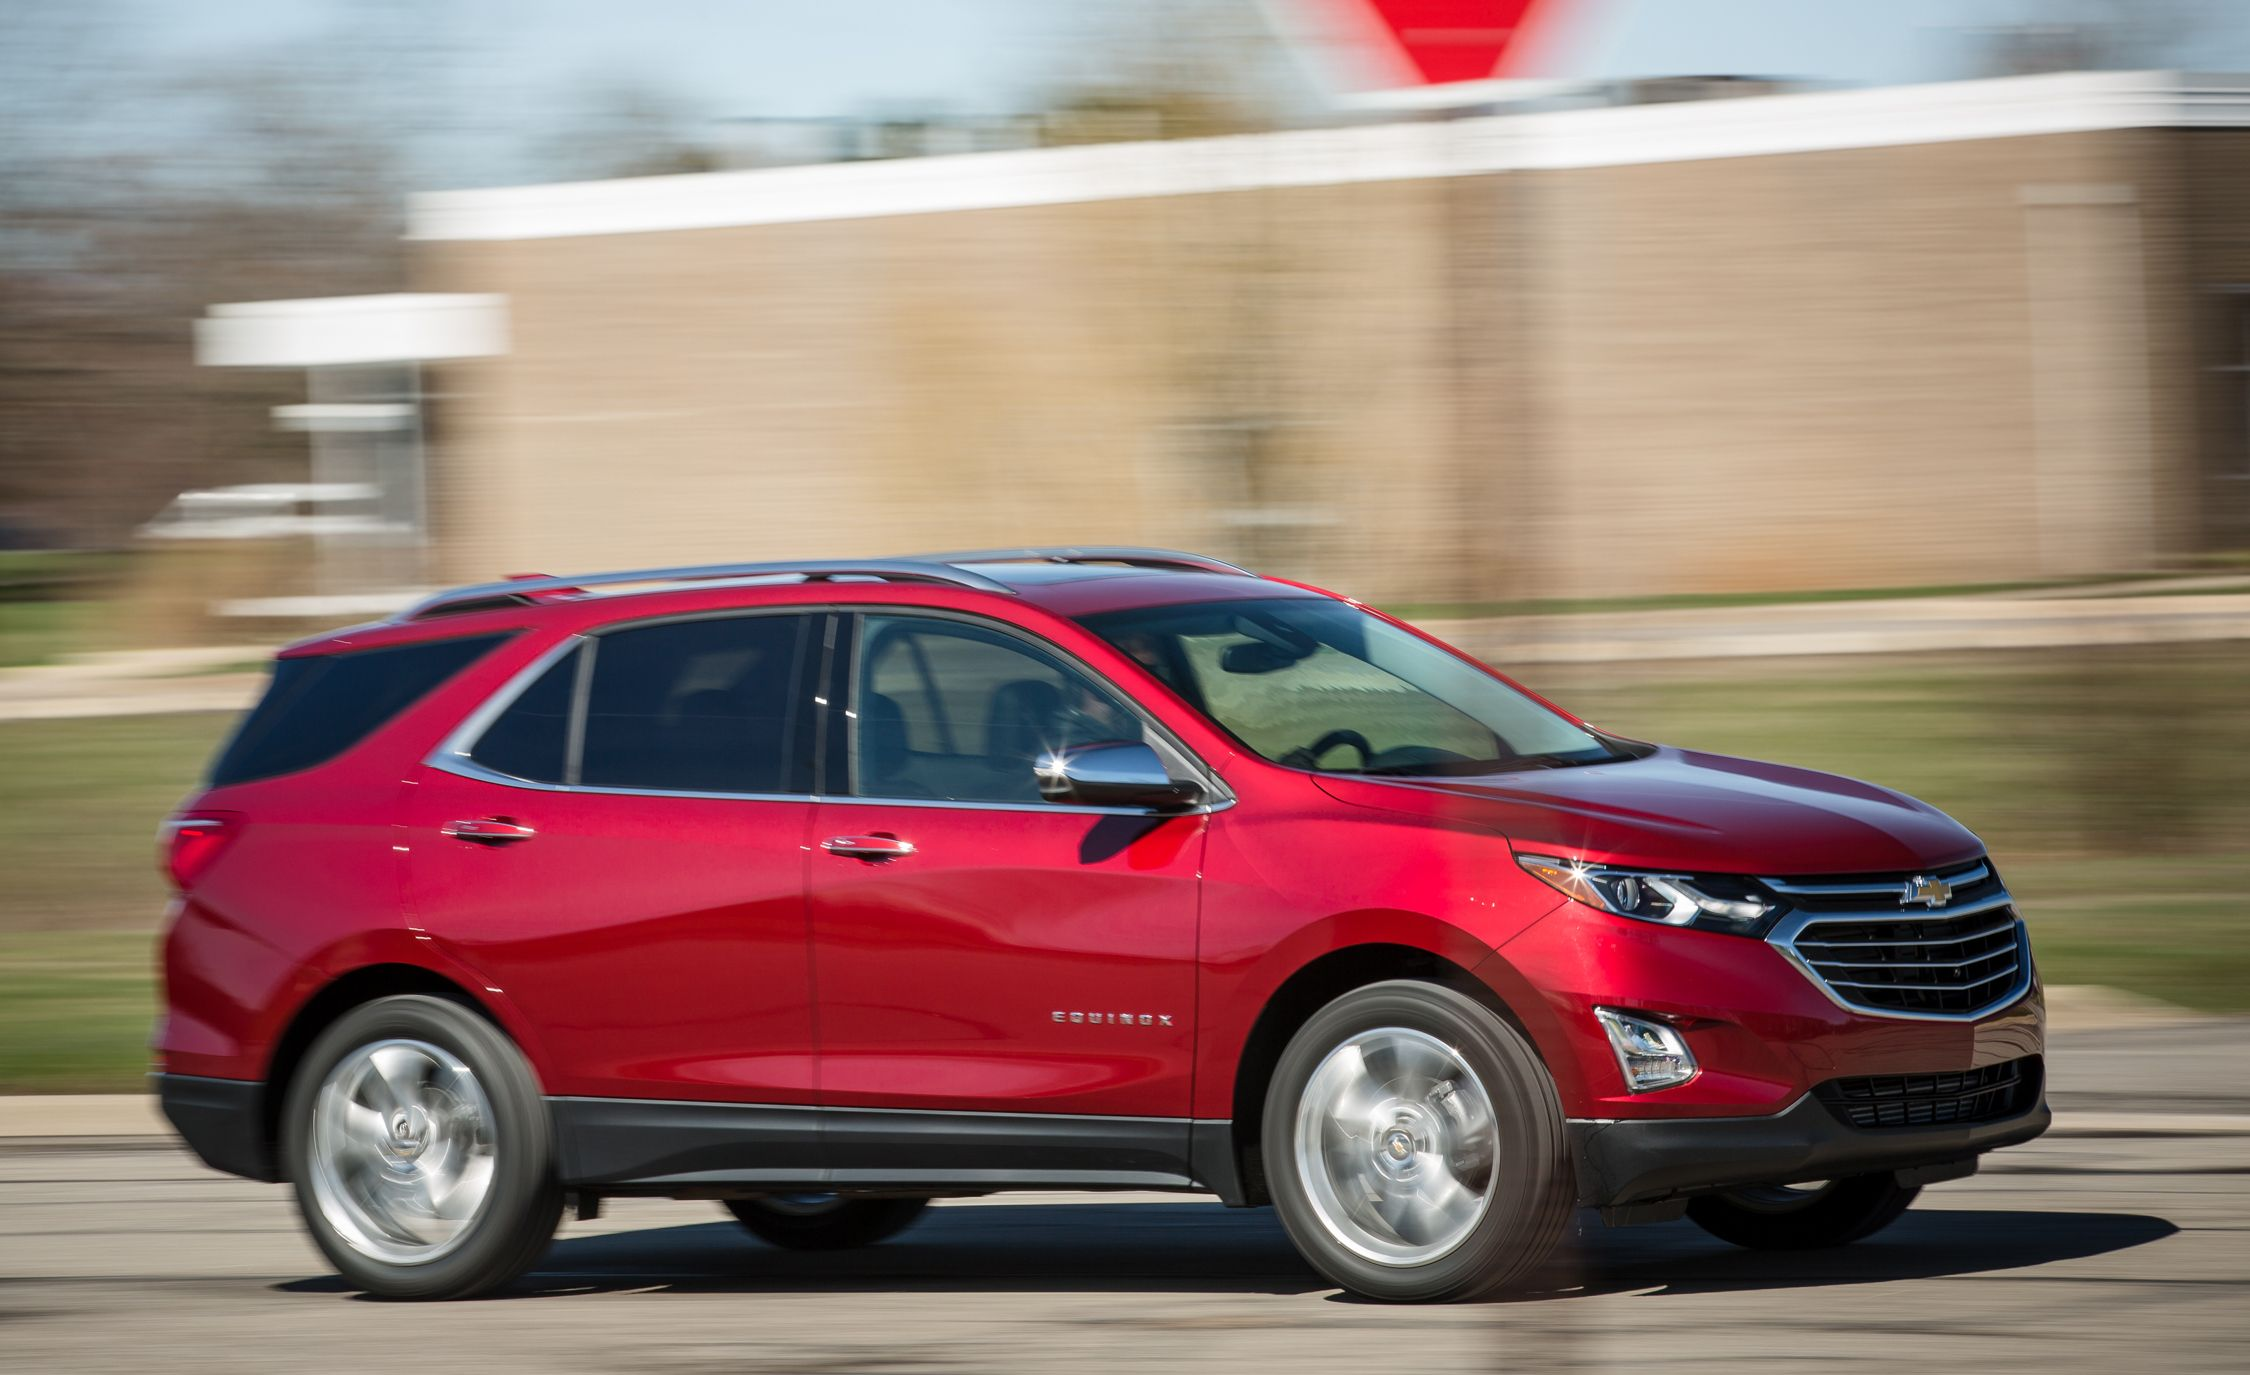 2018 Chevrolet Equinox Awd Test Review Car And Driver Chevy 3 4 Liter Engine Diagram